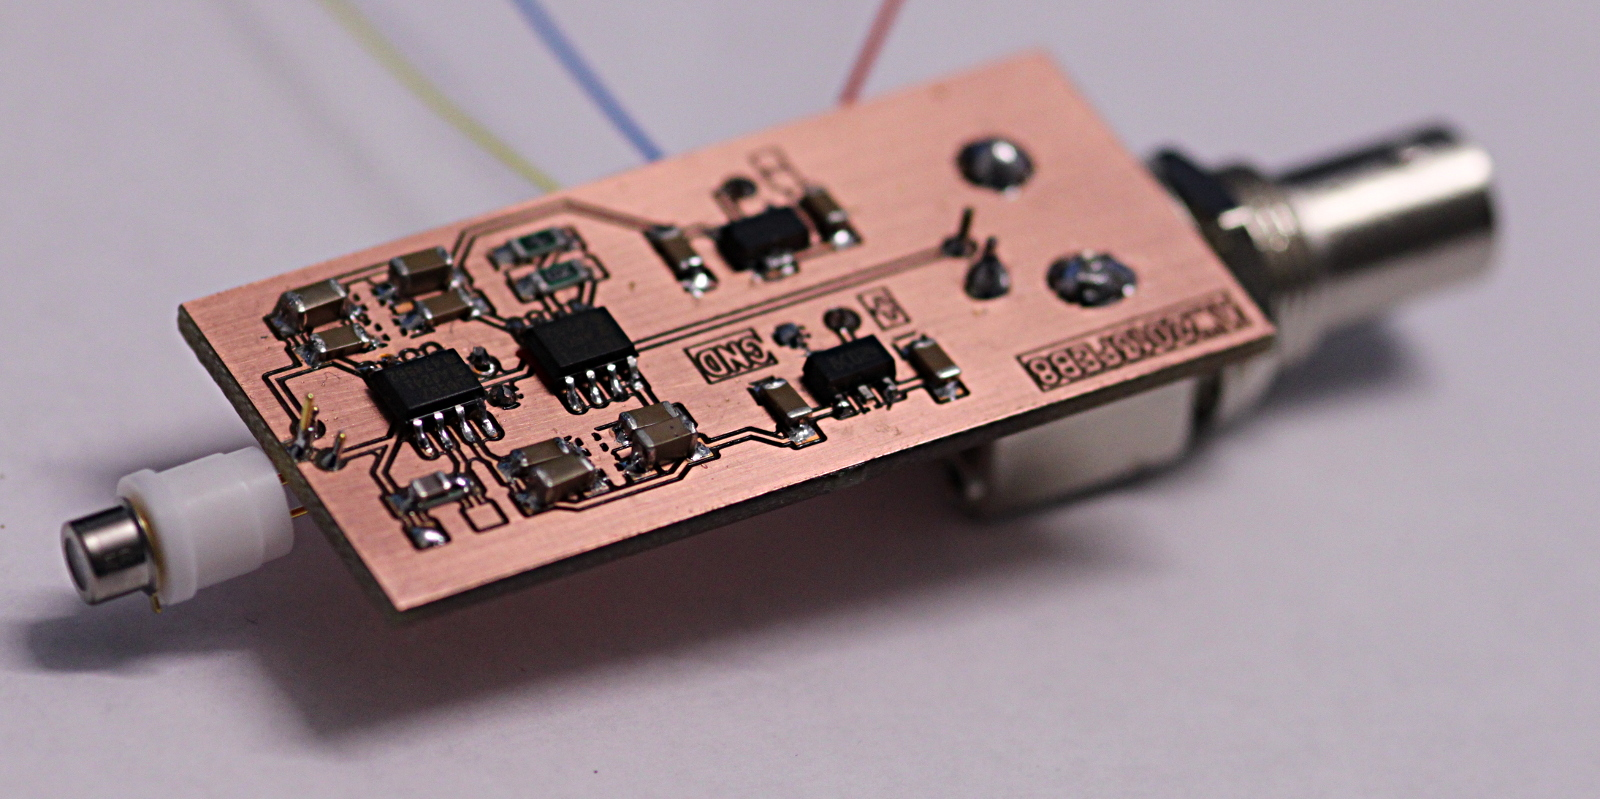 Photodiode The Transimpedance Amplifier Circuit Pd Amp V2 Assembled And Tested